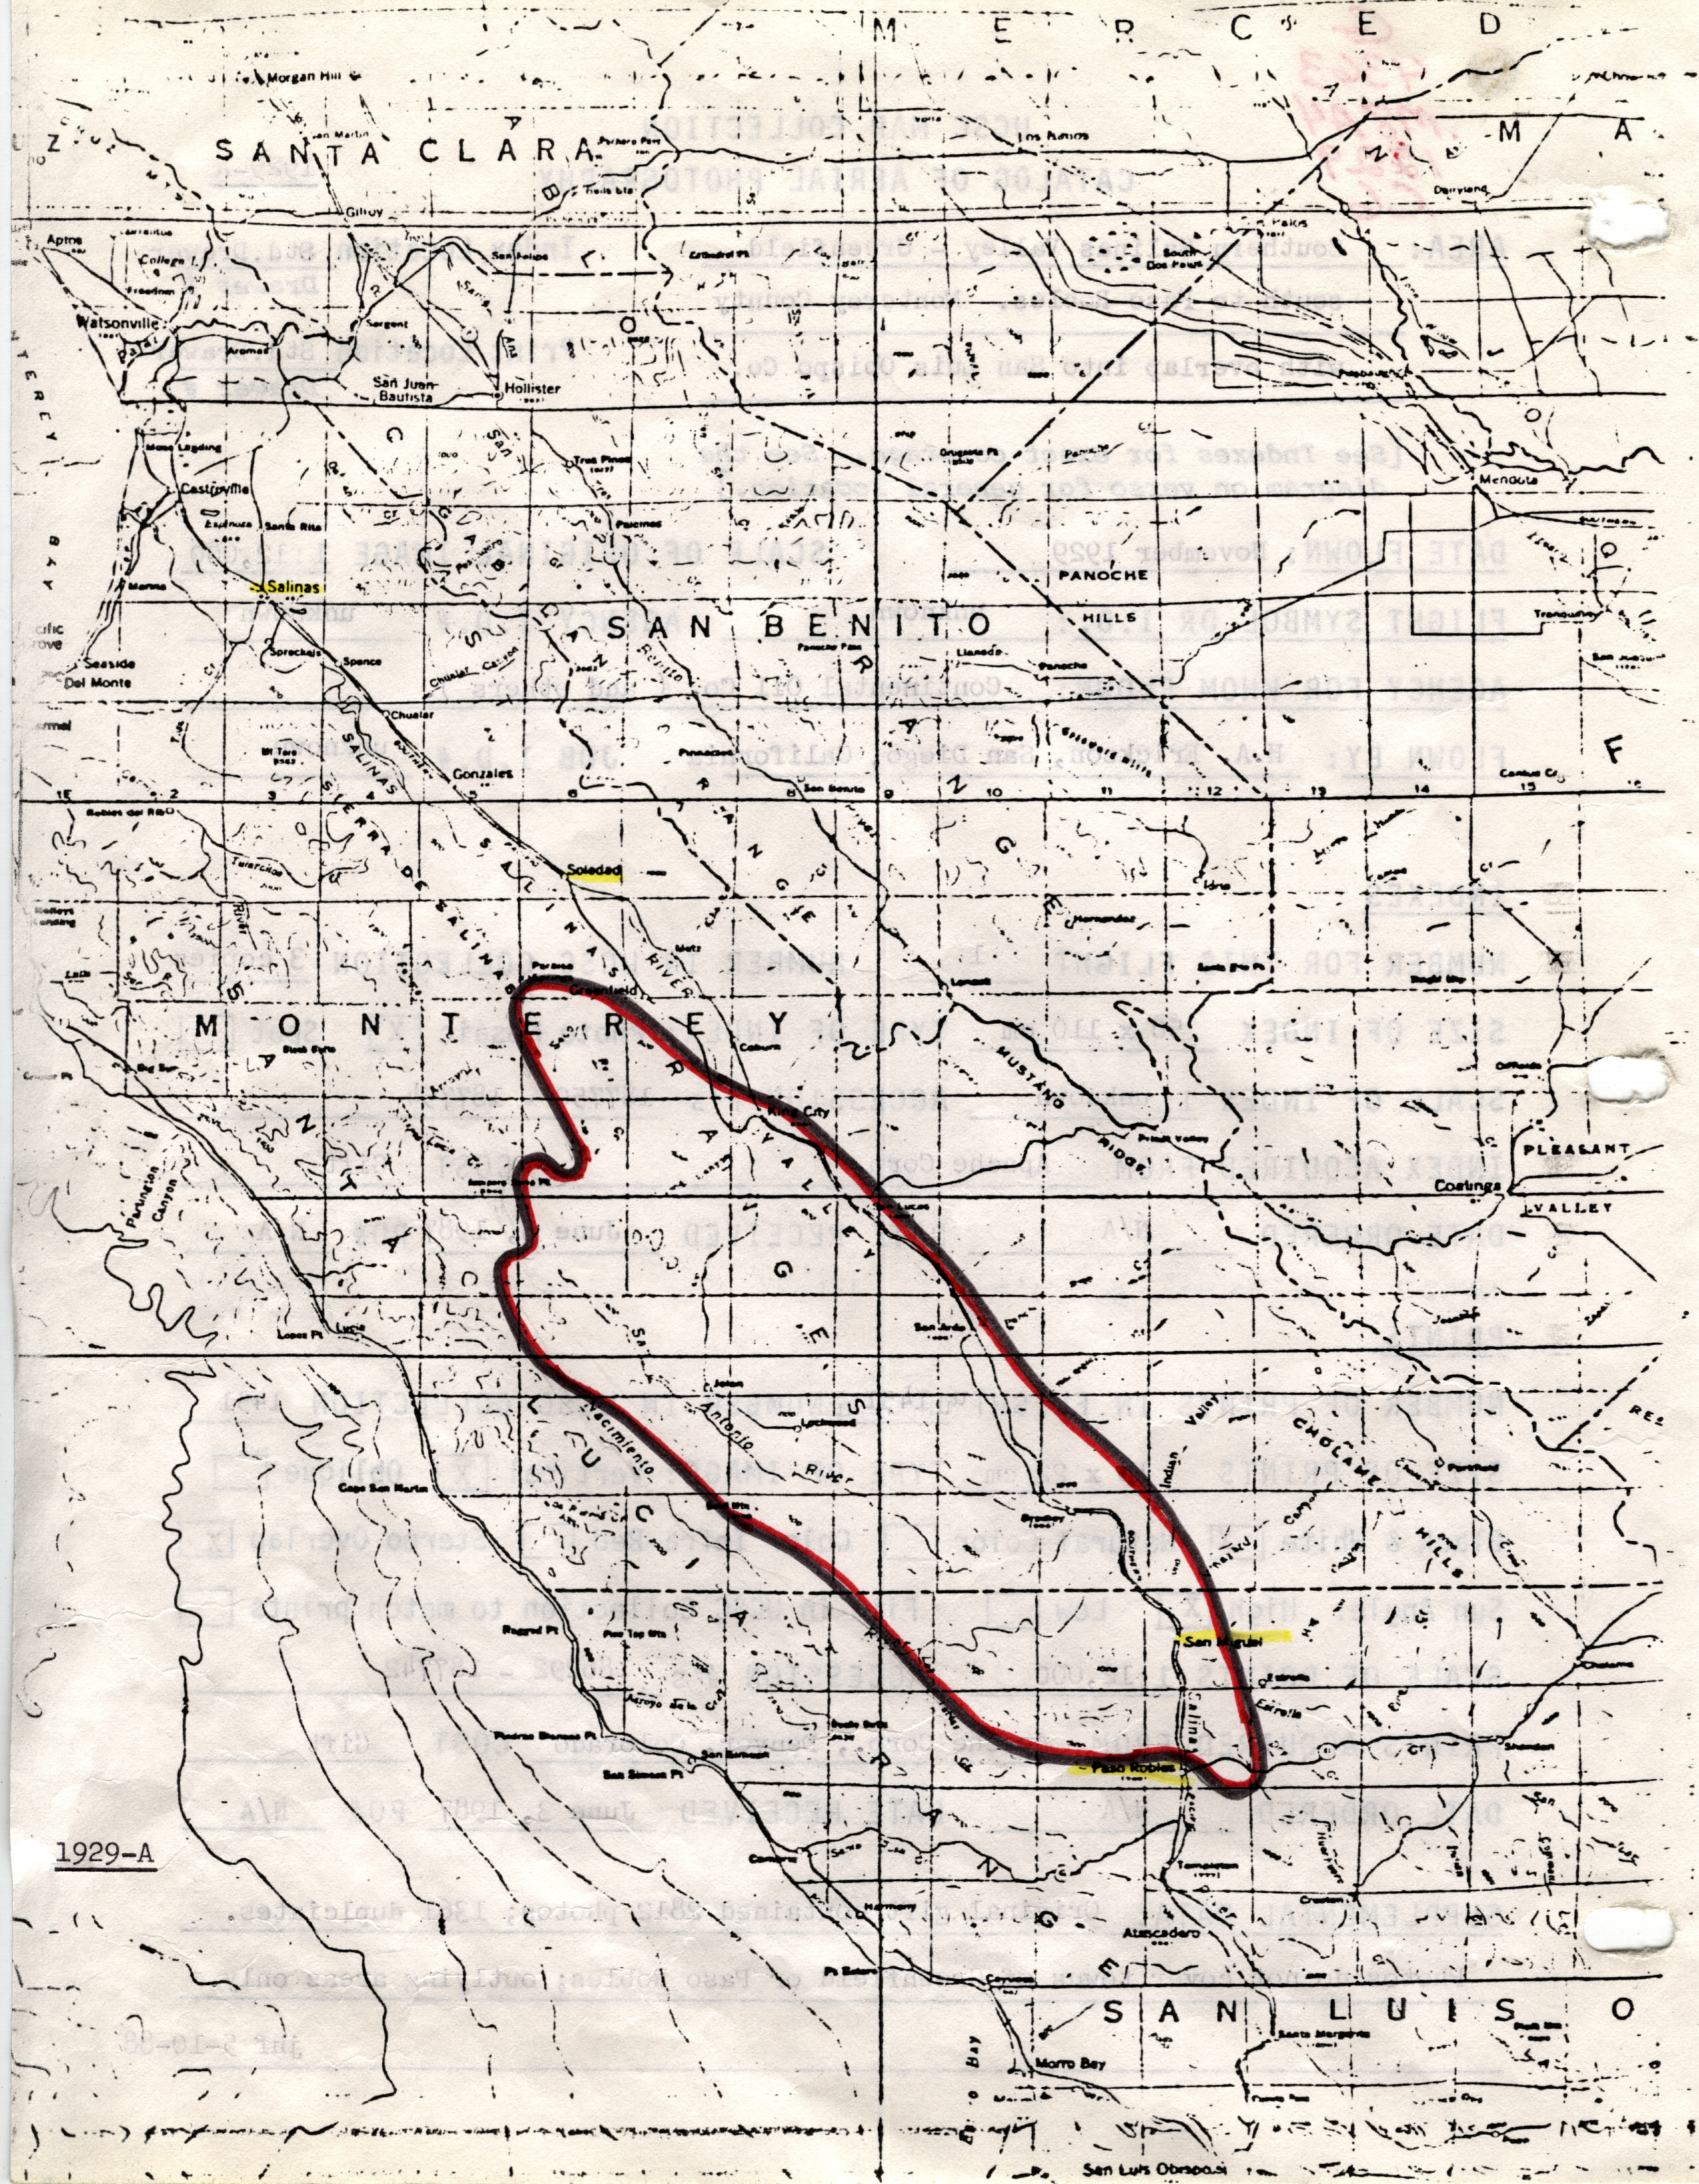 1929A Southern Salinas Valley Greenfield south to Paso Robles